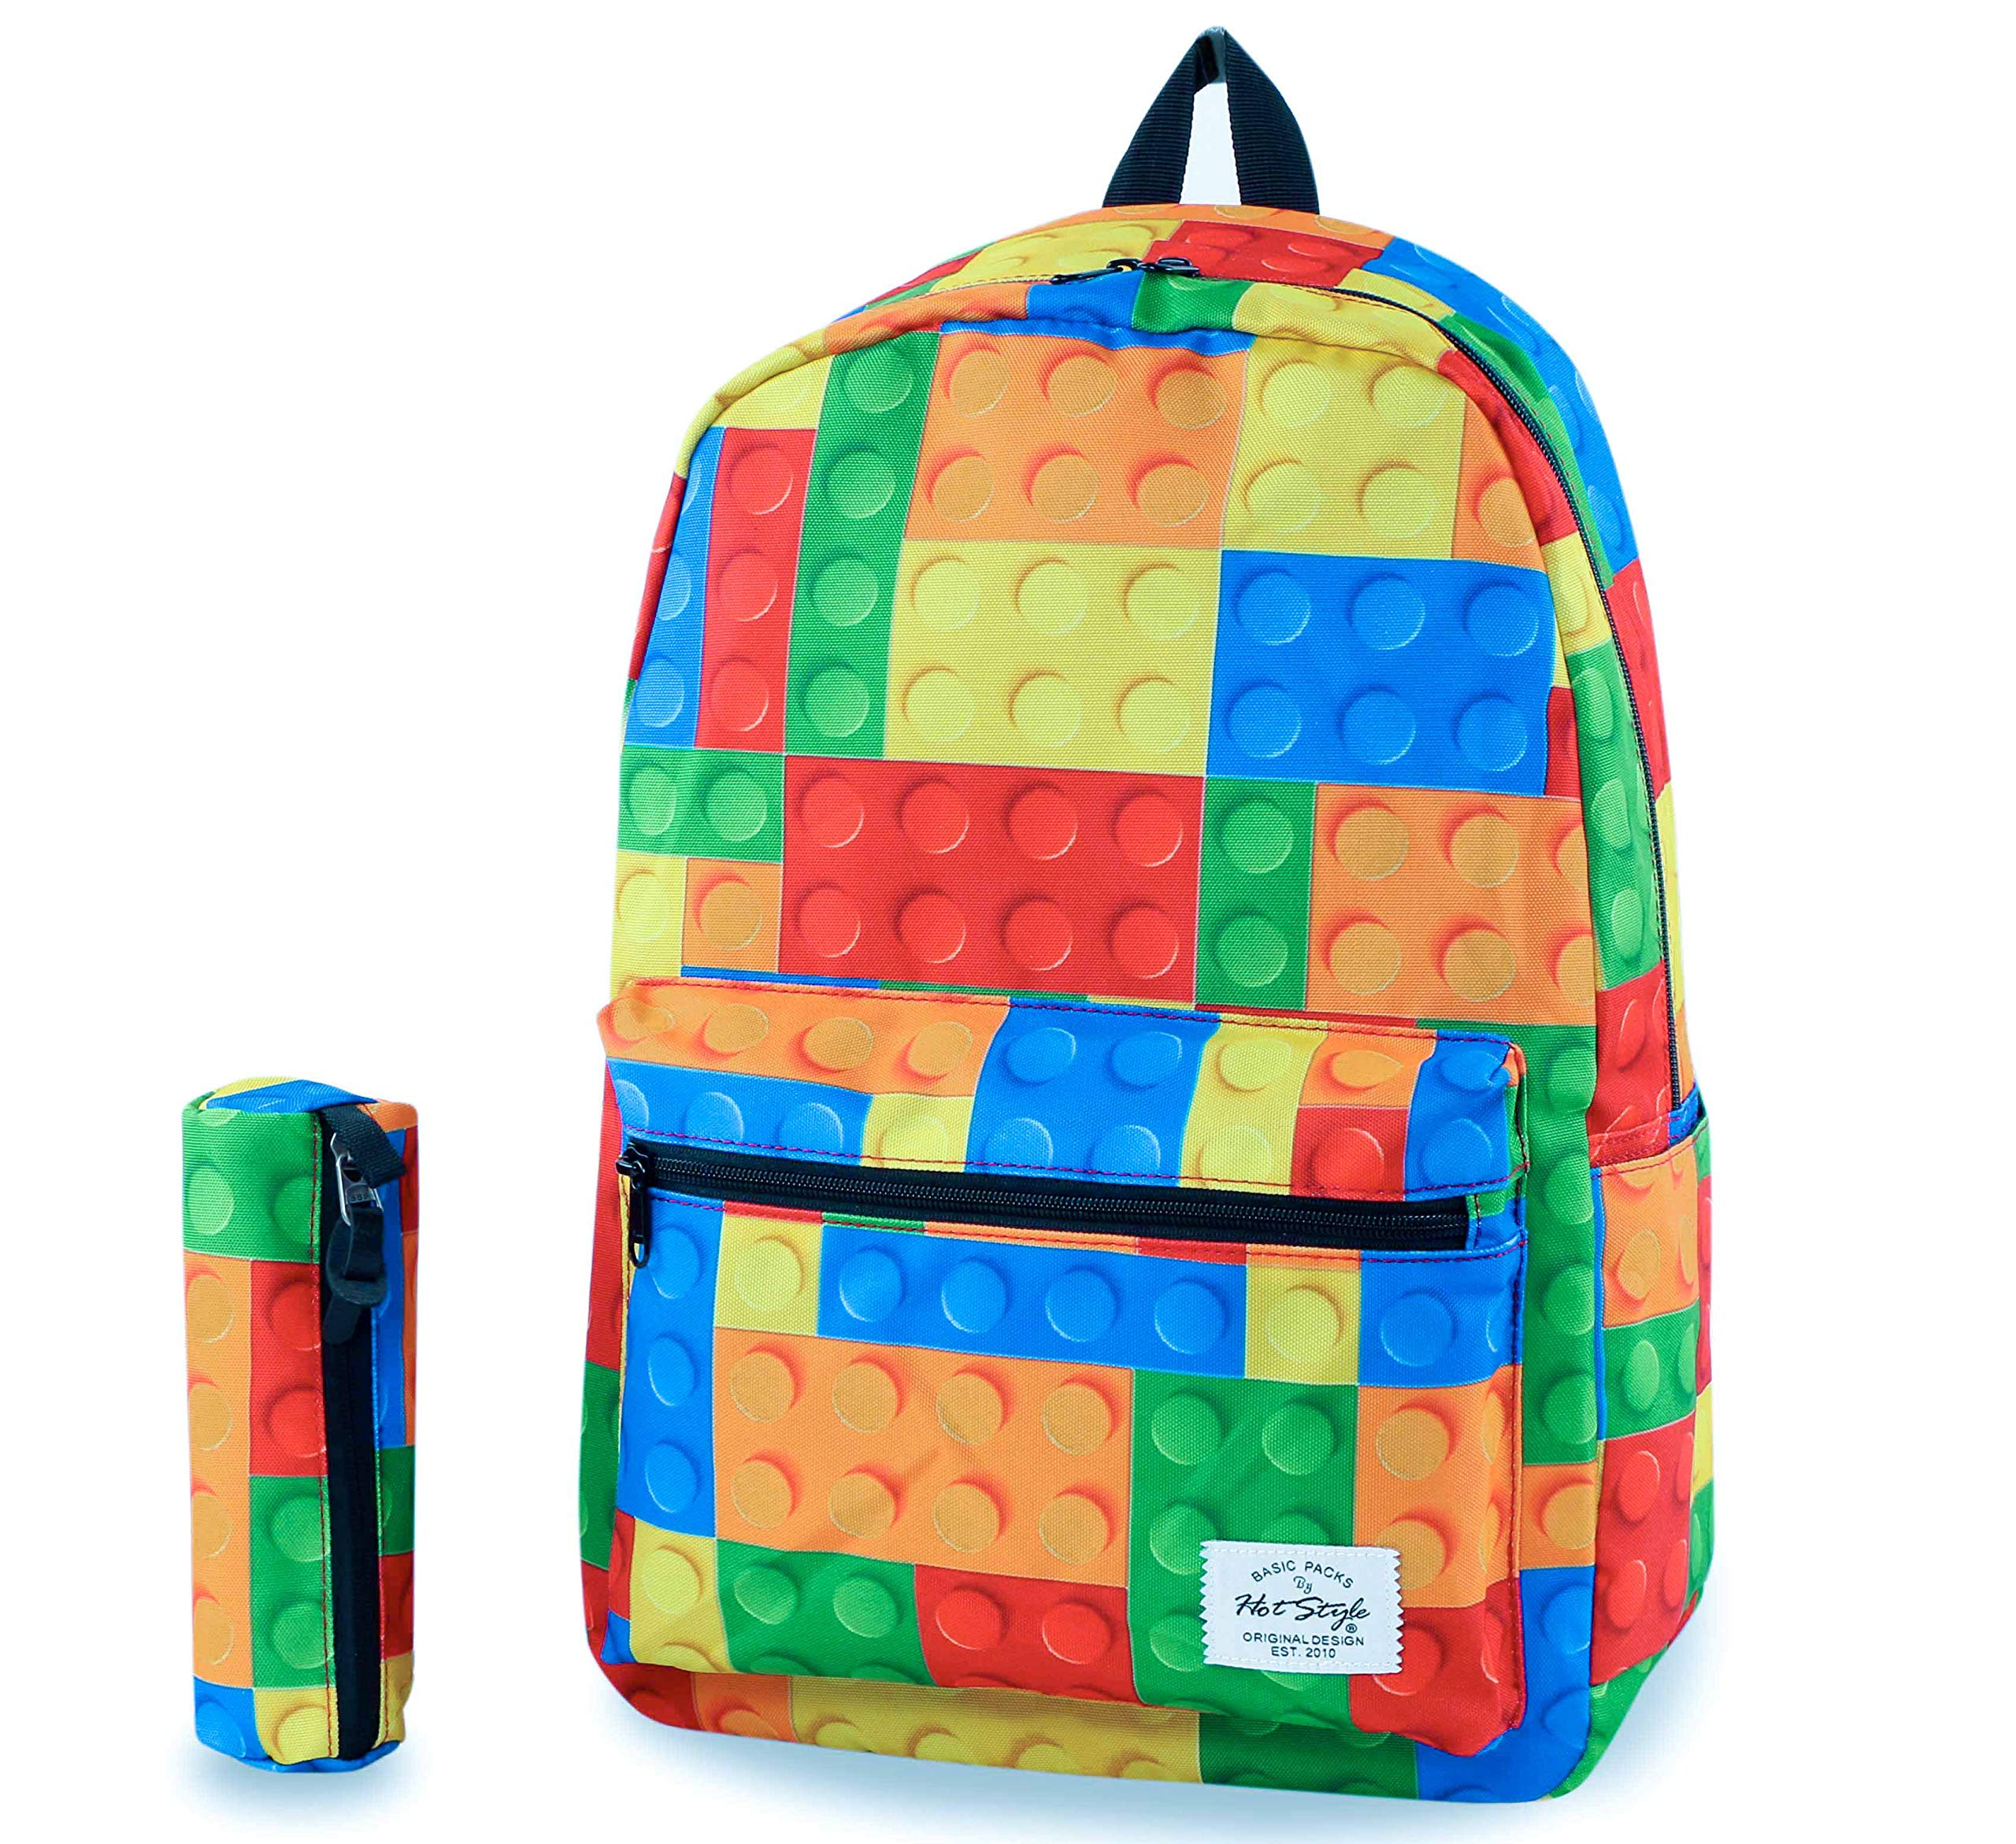 hotstyle TRENDYMAX Cute Backpack for School,Blocks | Bundles with Matching Pencil Bag by HotStyle